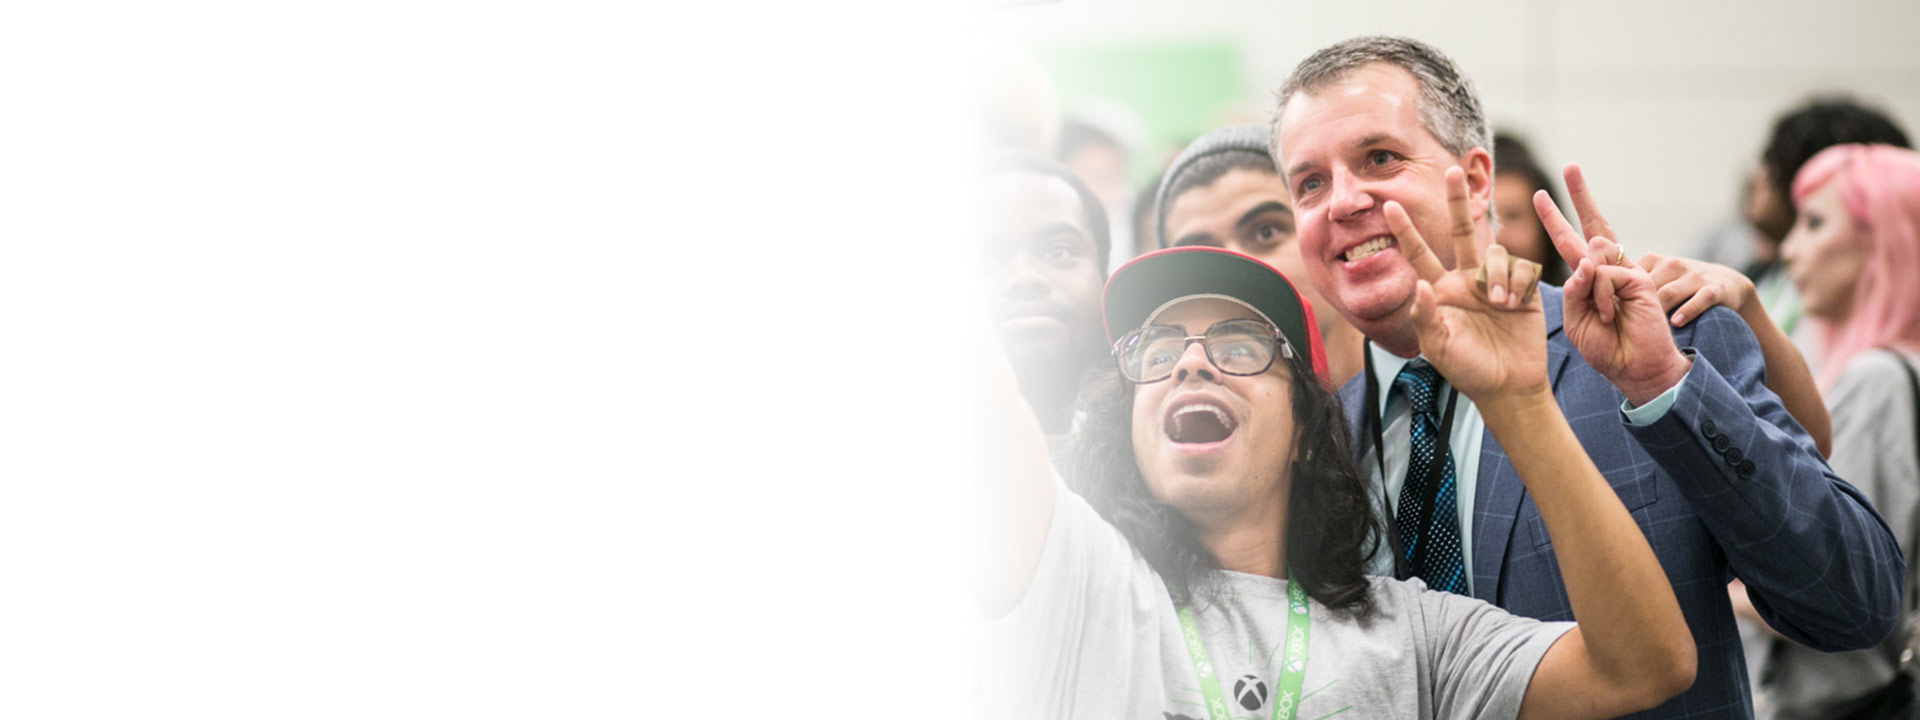 Xbox FanFest, group of three people taking a selfie together